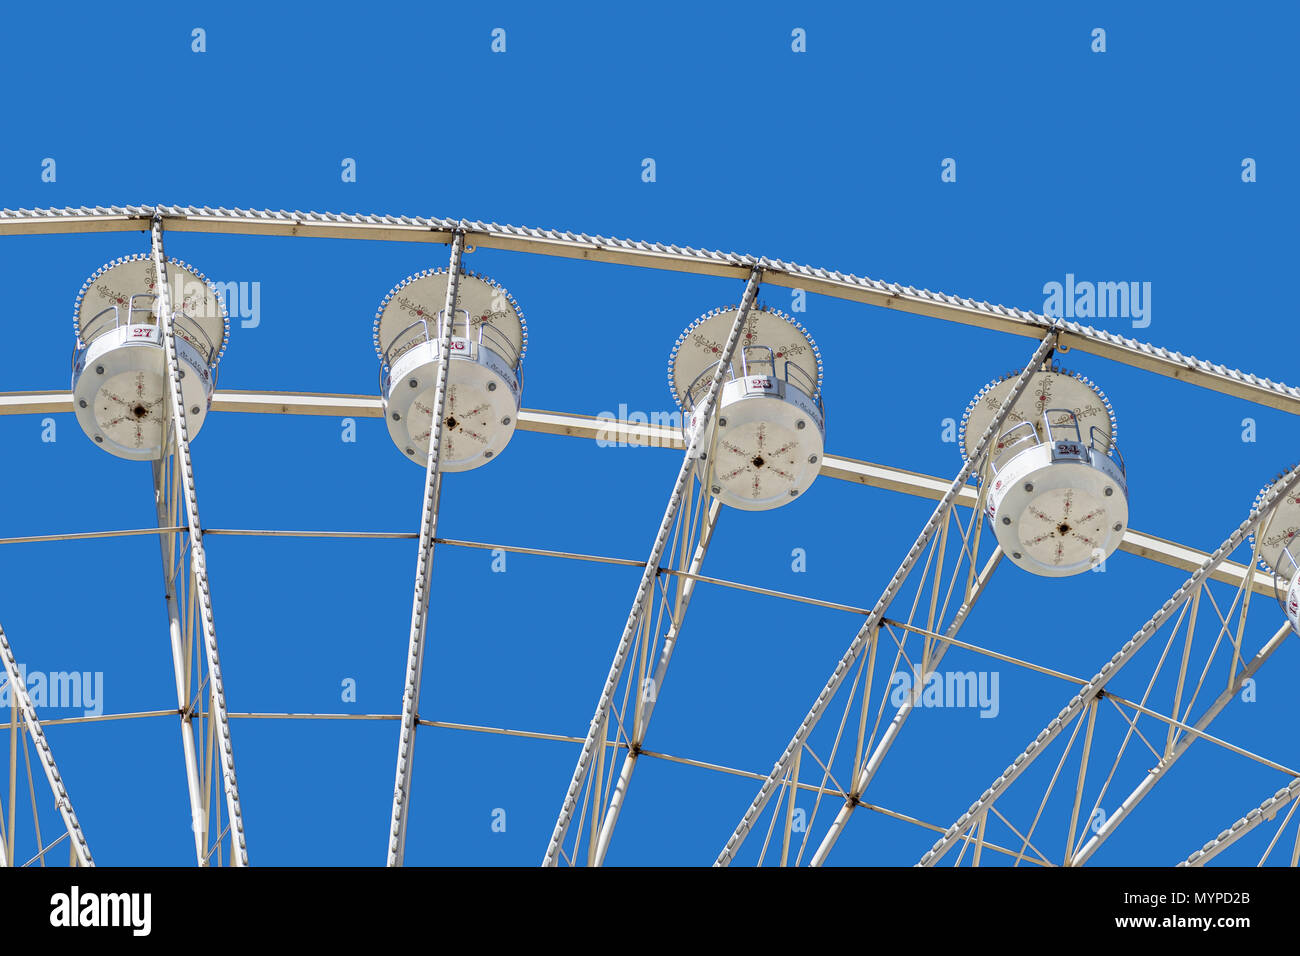 Ferris wheel with white cabins for the passengers, seen from below, at a fairground - Stock Image